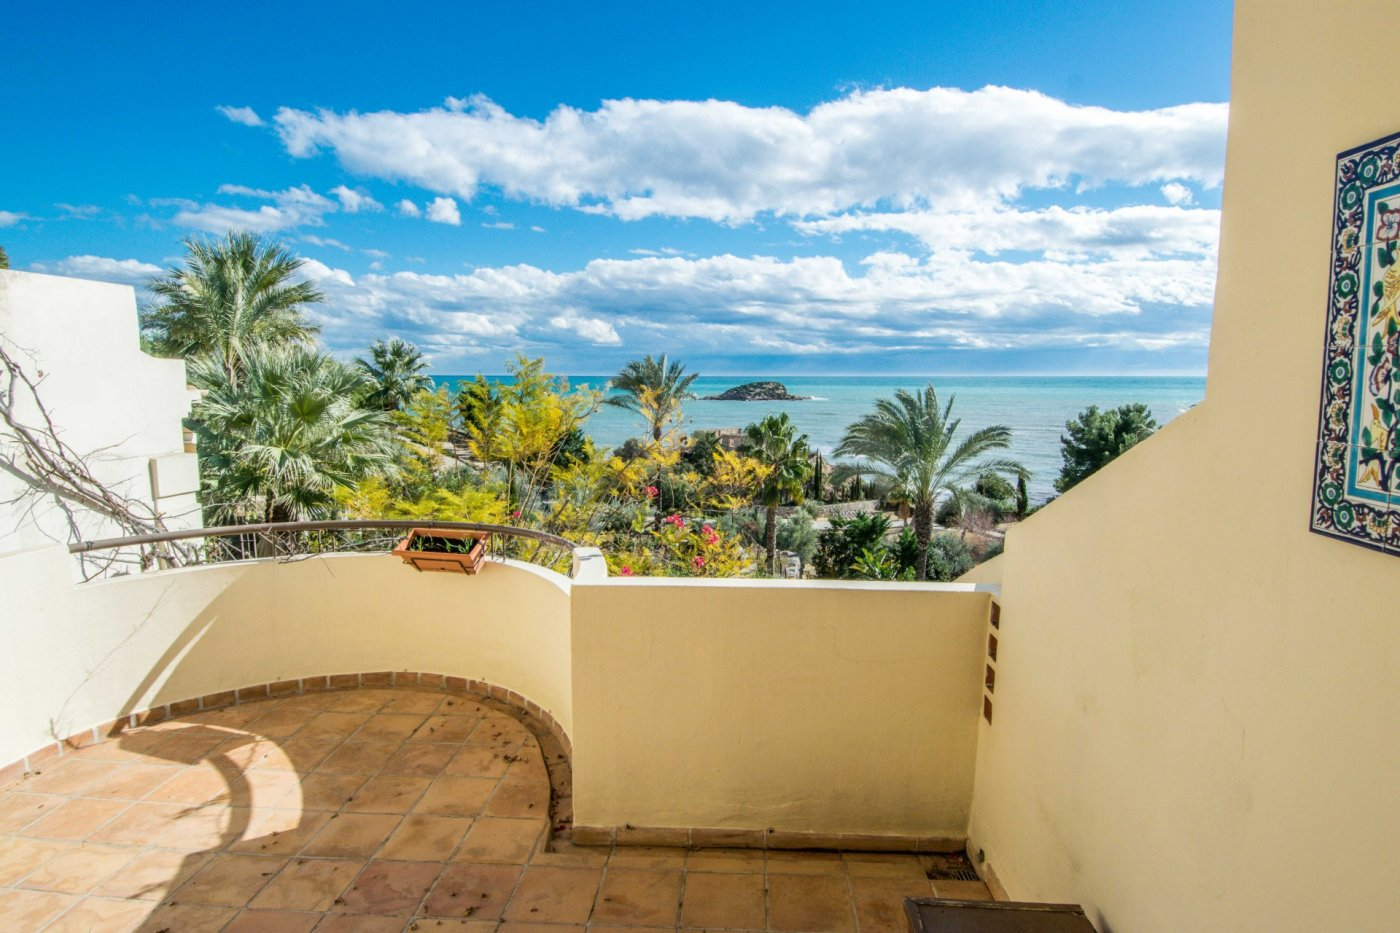 Townhouse - Ready To Move And Live - 1a Linea - Altea